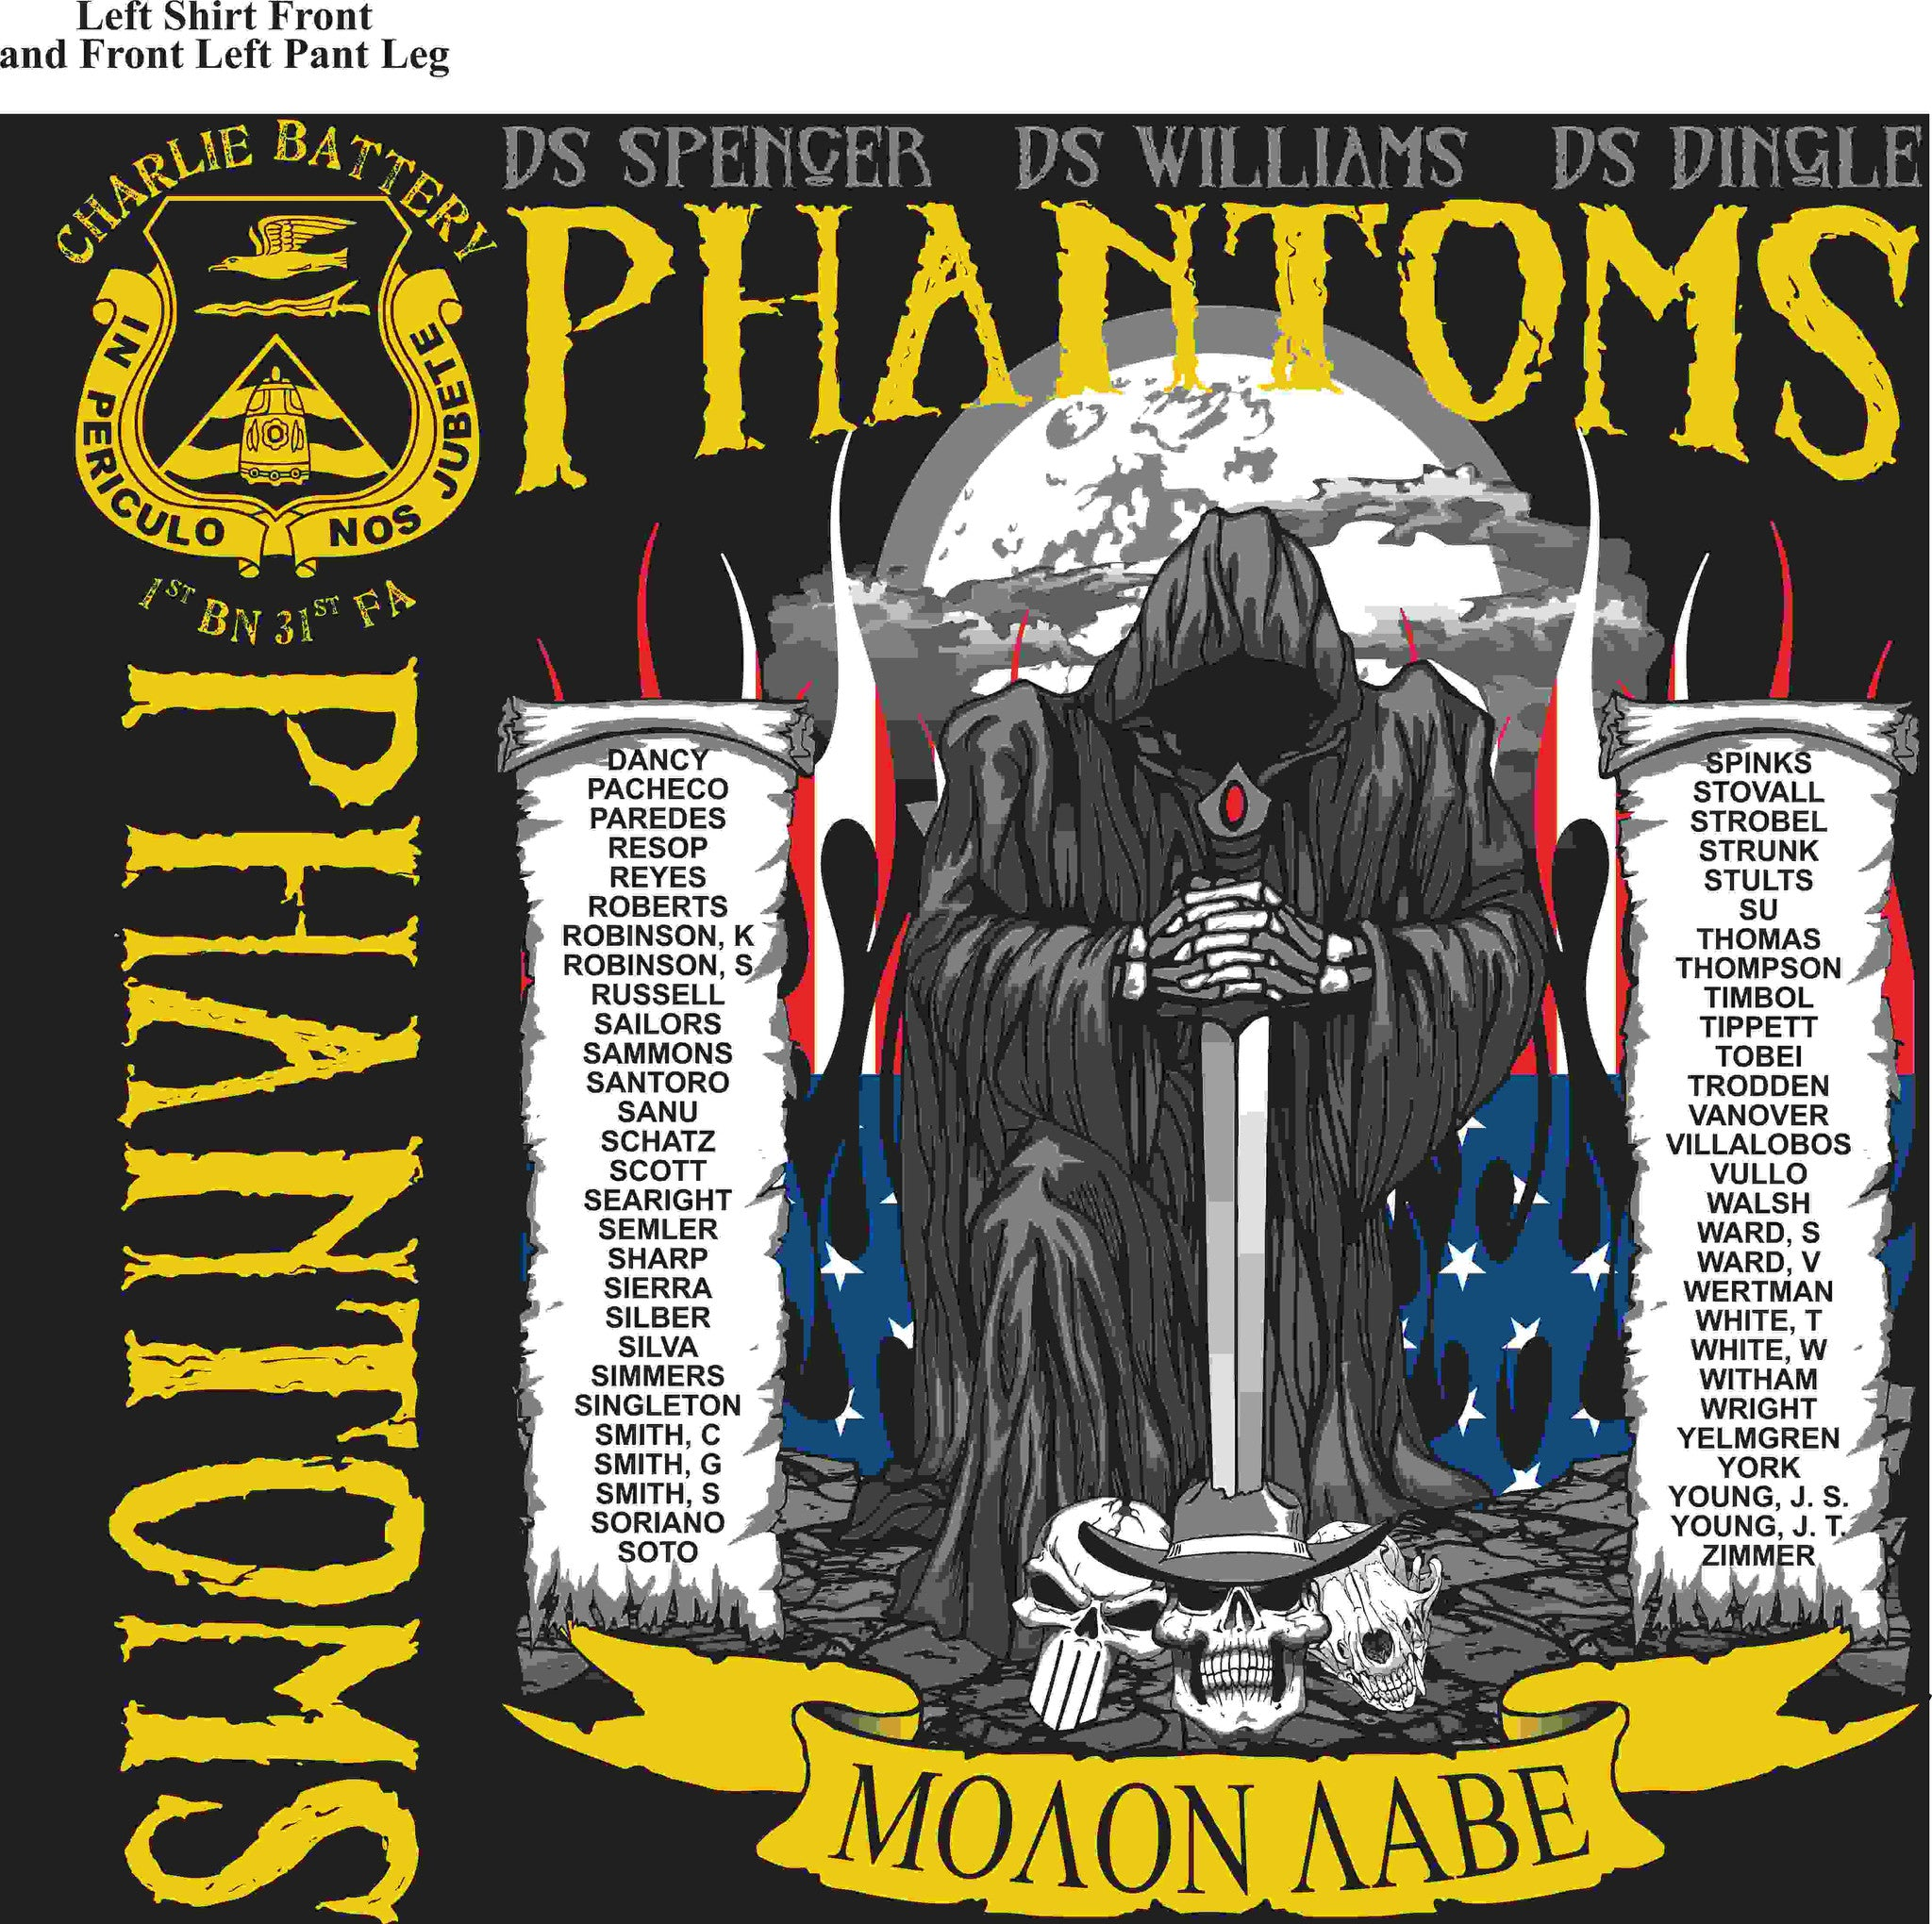 PLATOON SHIRTS (digital) CHARLIE 1st 31st PHANTOMS JAN 2016